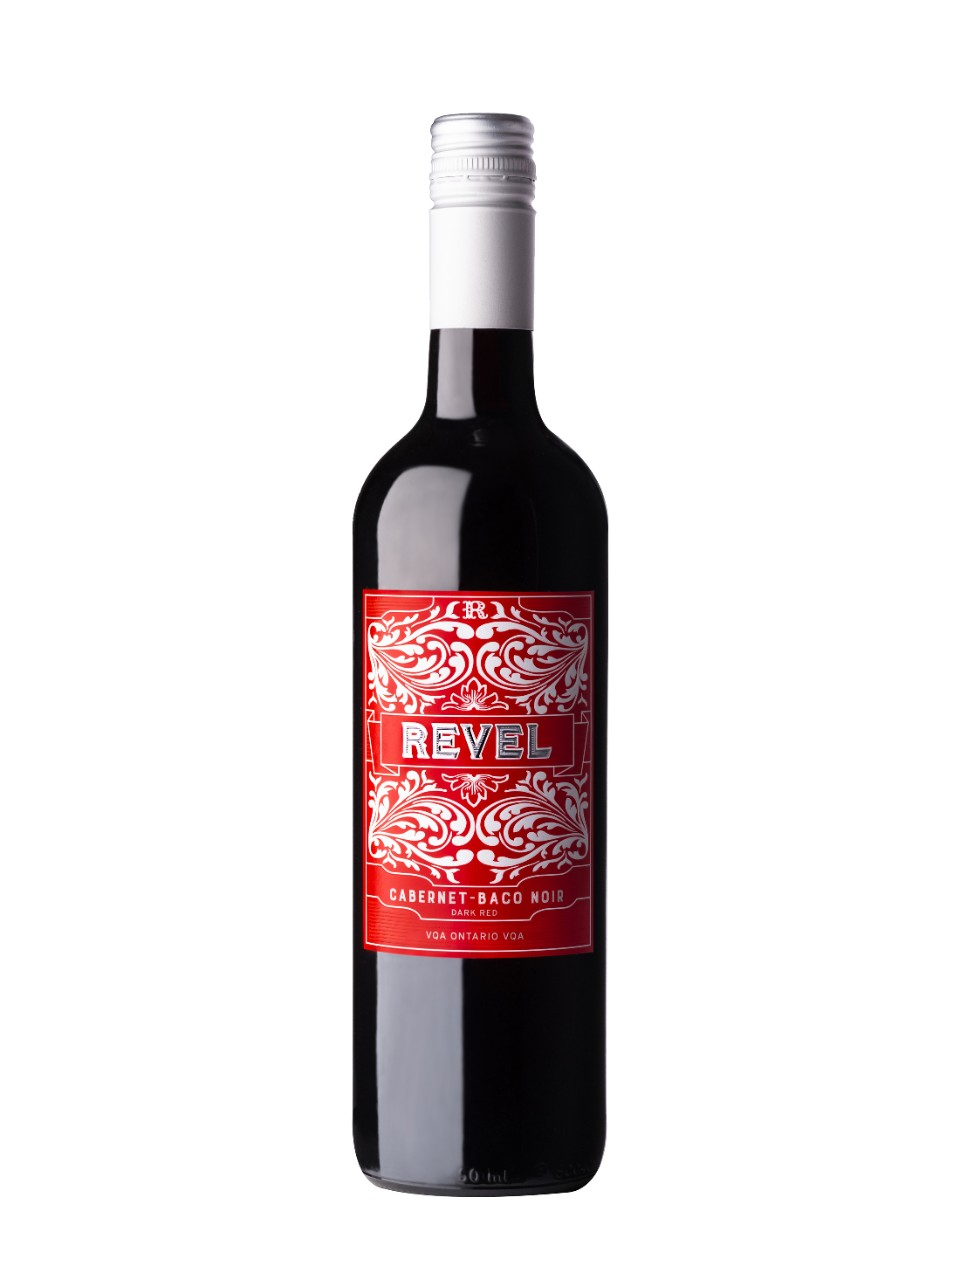 Revel Cab Noir Dark Red VQA from LCBO